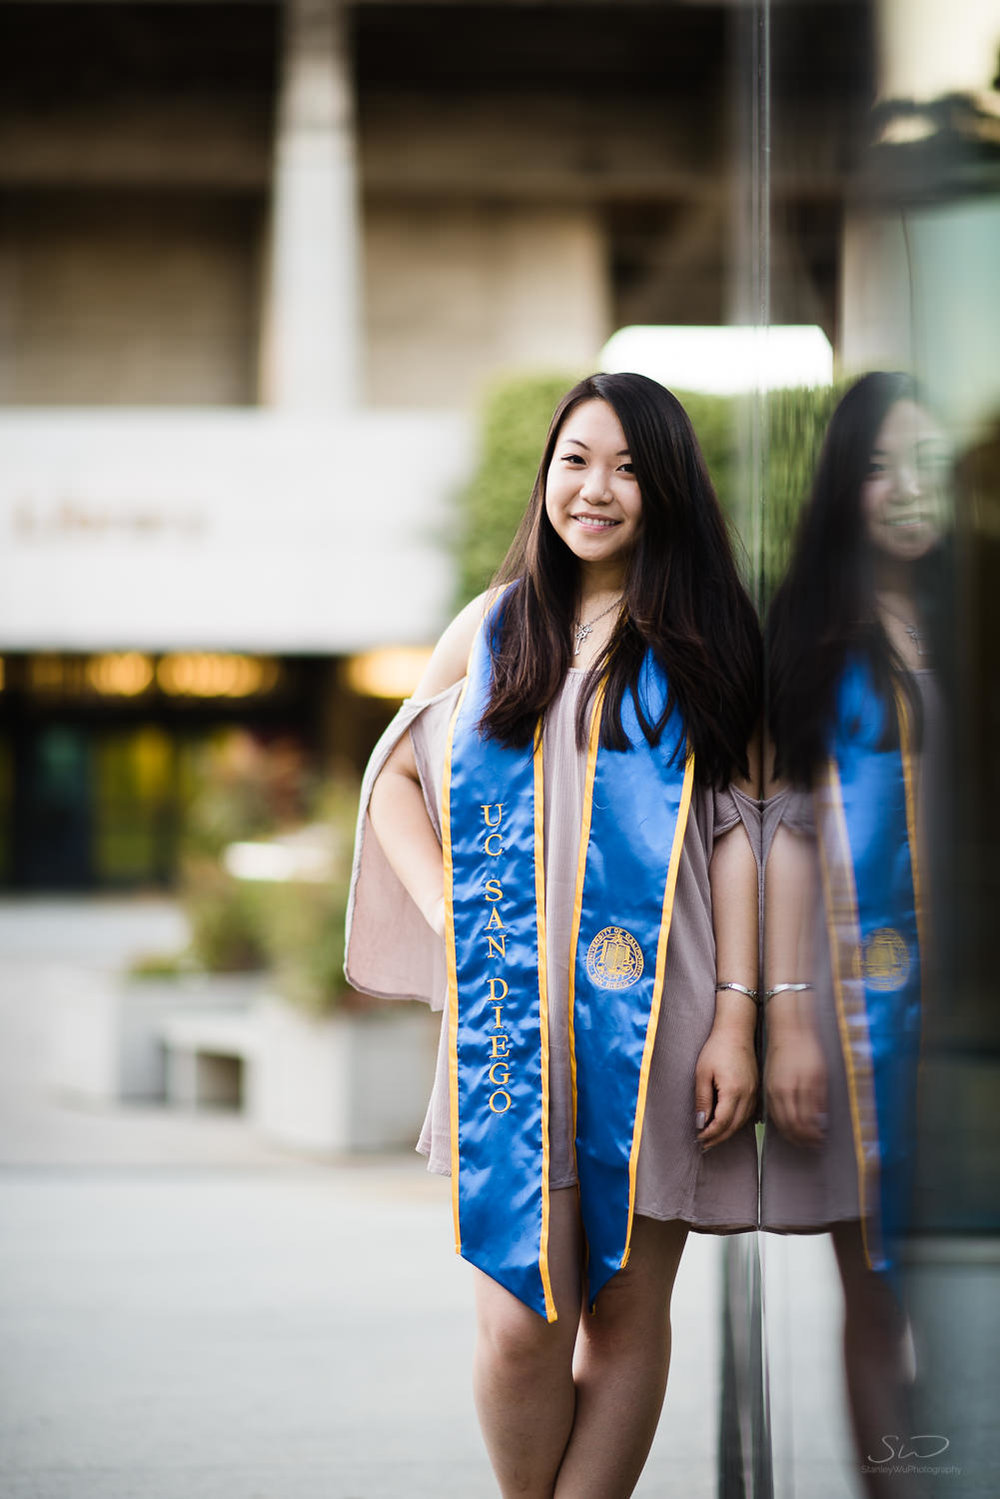 Posing in front of Geisel Library at UC San Diego. Best graduation portrait photography, Los Angeles.